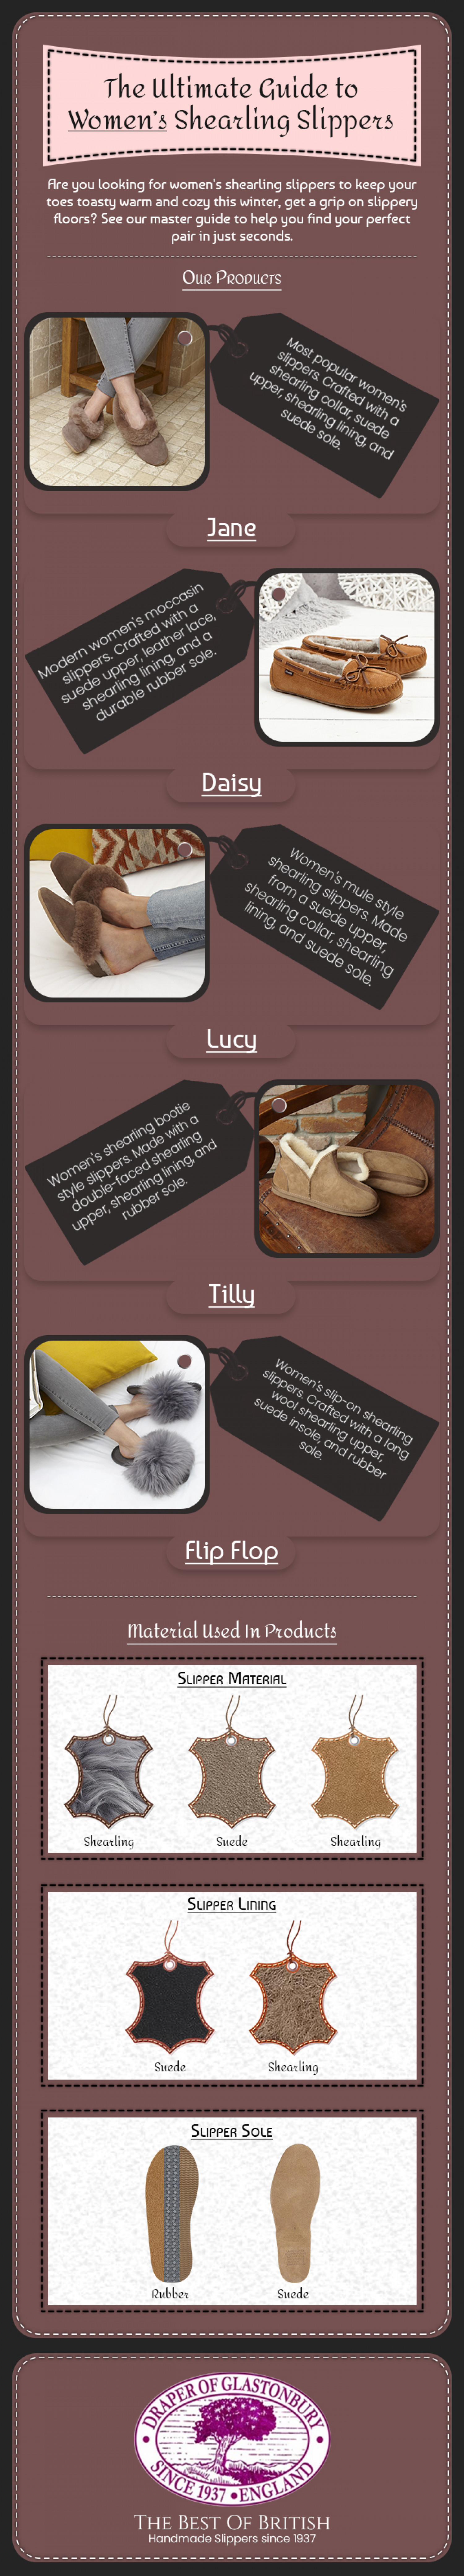 The Ultimate Guide to Women's Shearling Slippers  Infographic